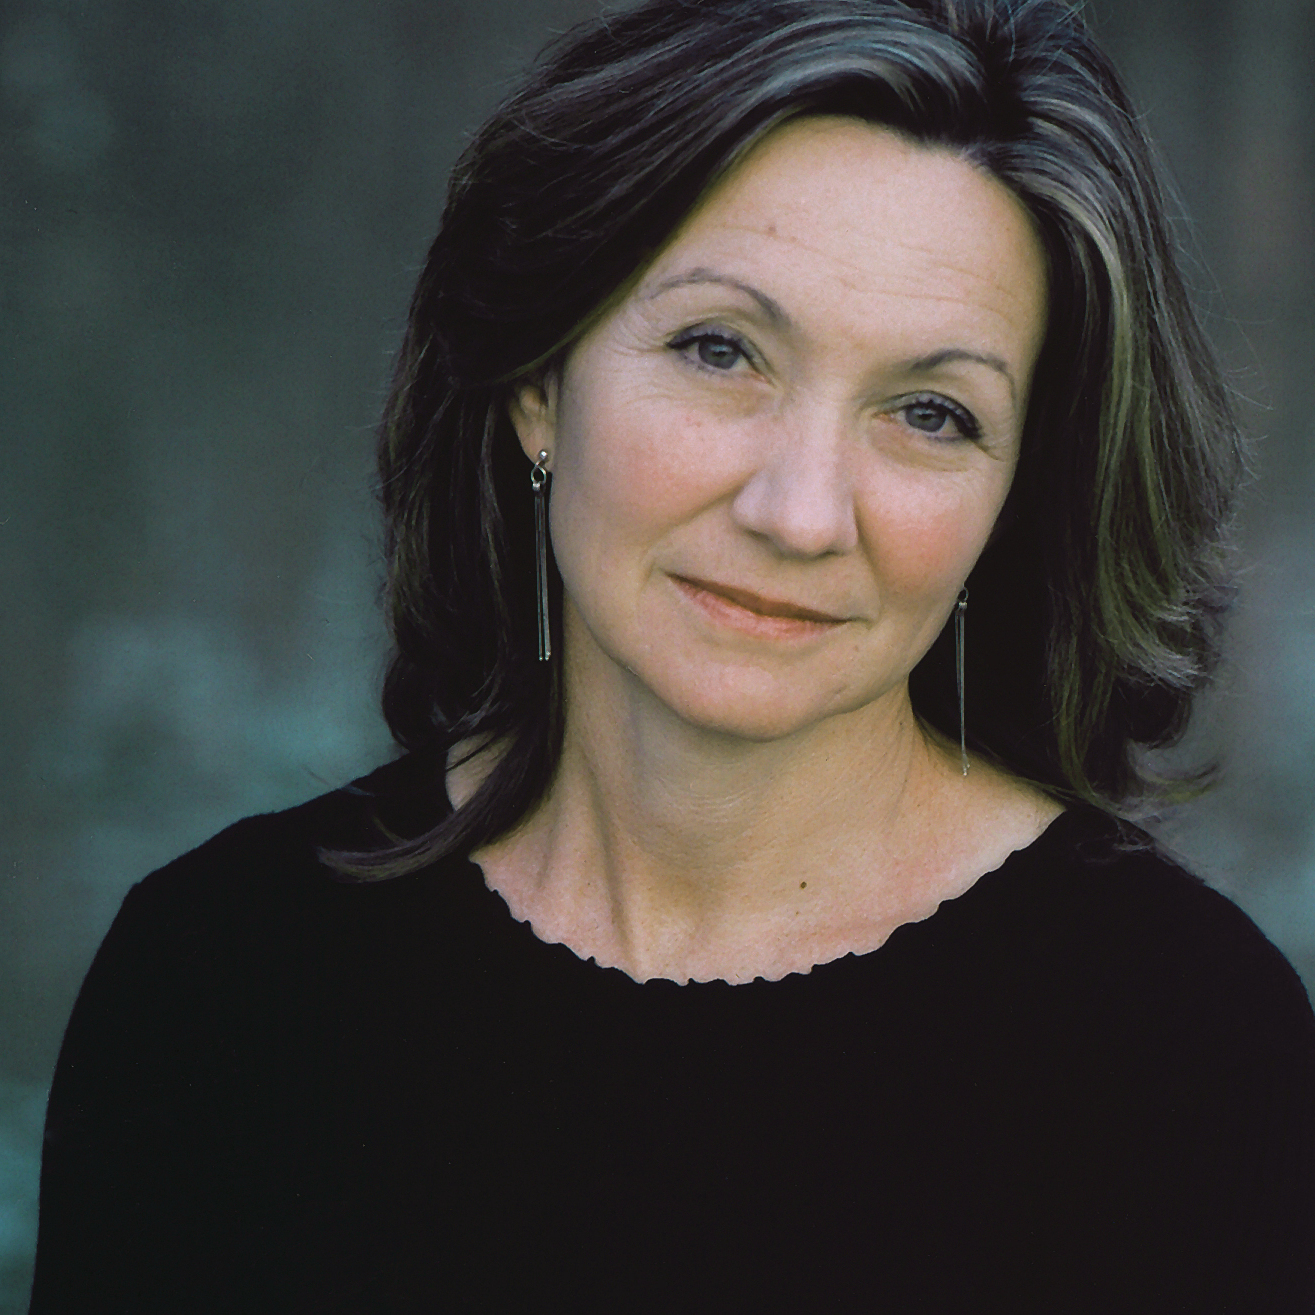 Jill McCorkle teaches creative writing at North Carolina State University.